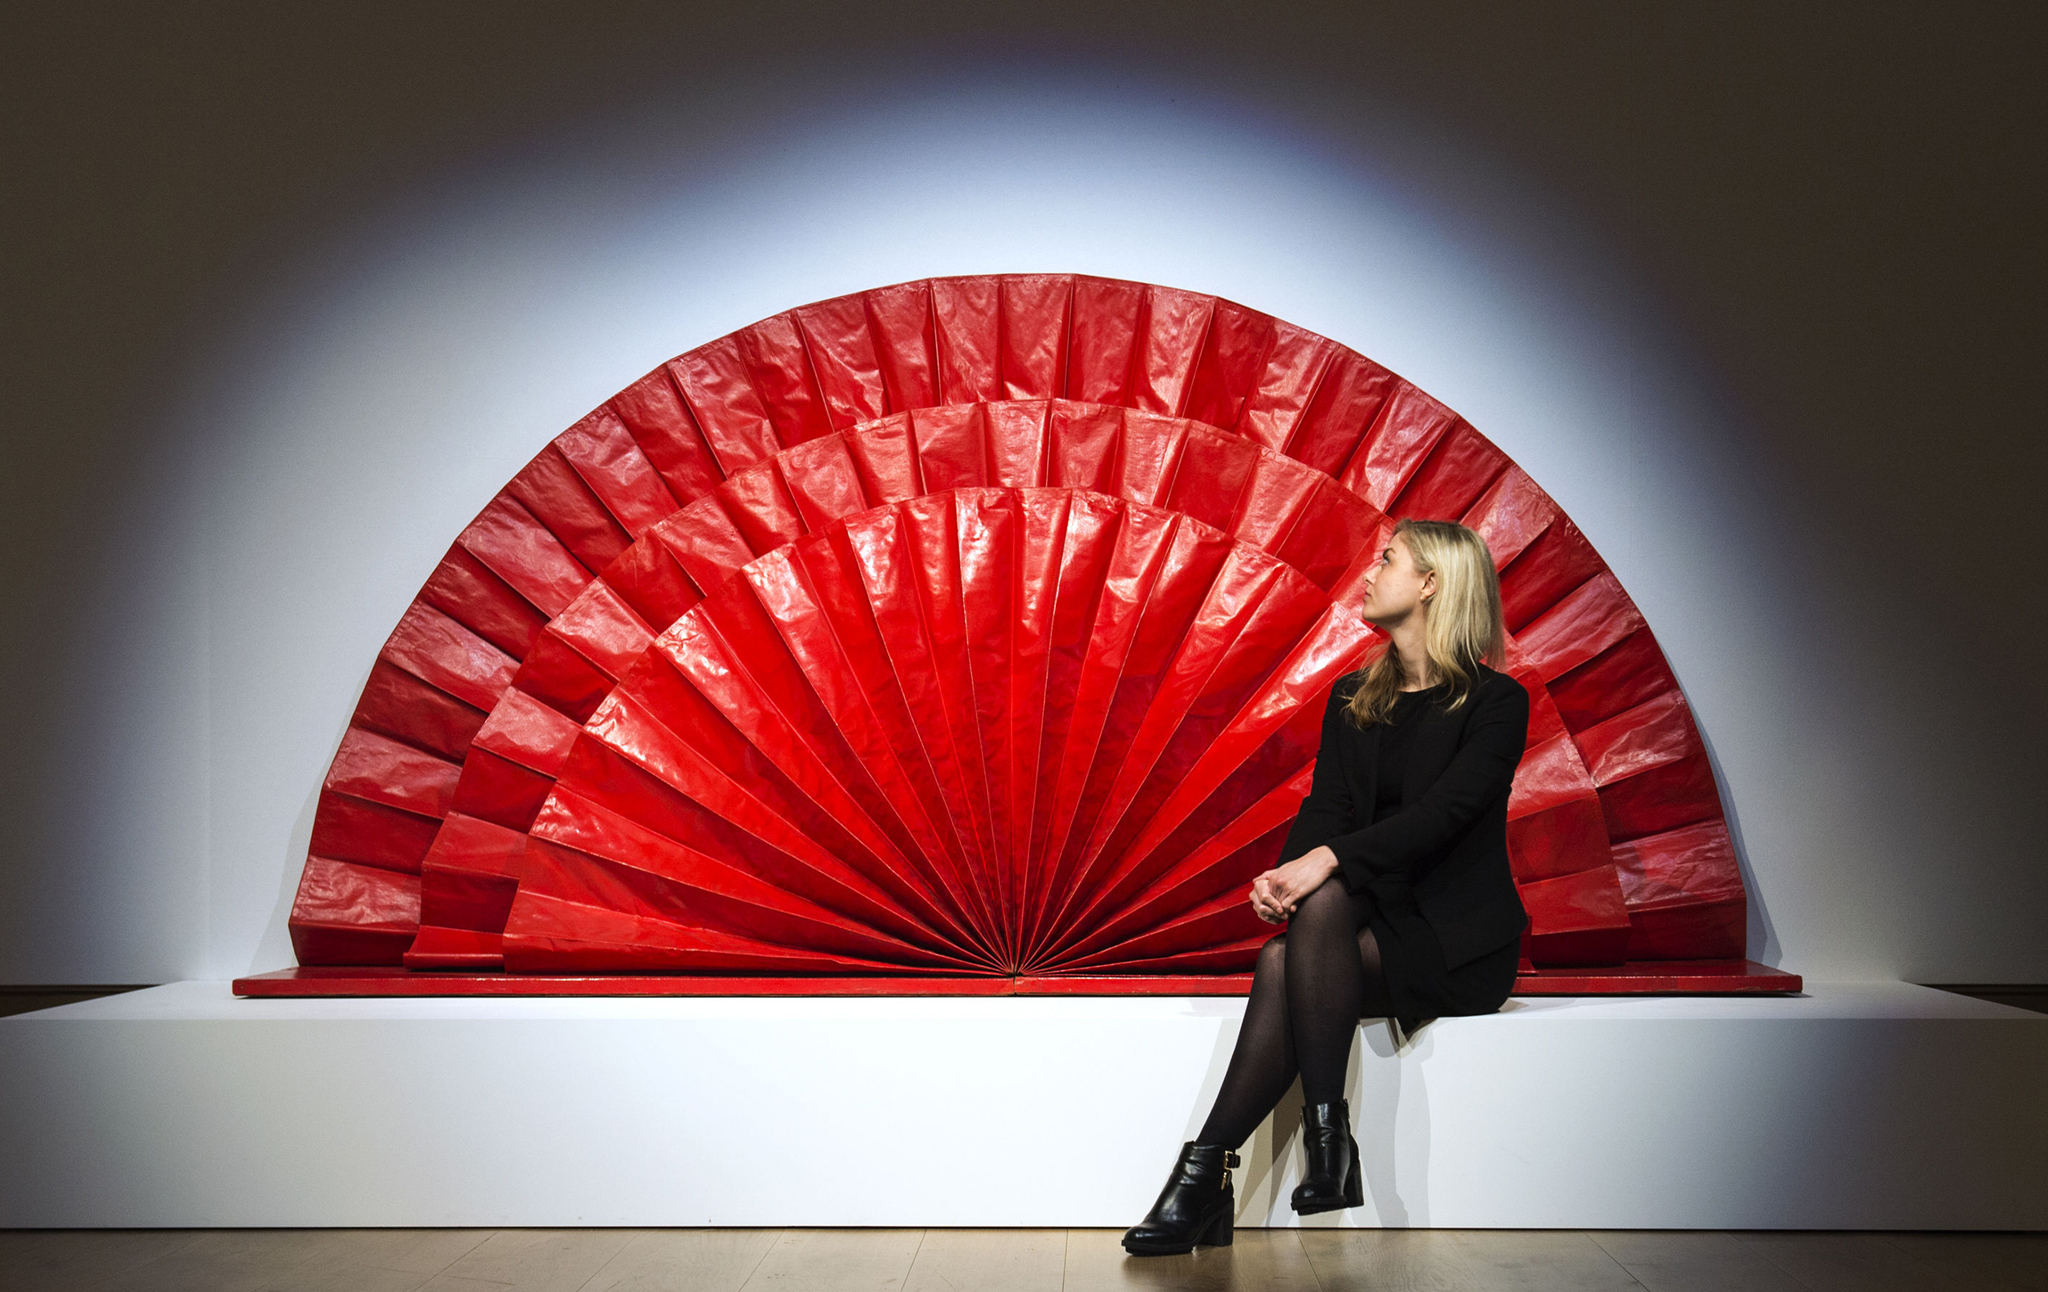 onham's Post-War and Contemporary Art Sale...A woman walks past Untitled (Red Fan) by Kazuo Shiraga, estimated at between £1,500,000 and £2,000,000, during the press preview of Bonham's forthcoming Post-War and Contemporary Art Sale which will be held on February 11 in London. PRESS ASSOCIATION Photo. Picture date: Monday February 1, 2016. Photo credit should read: Anthony Devlin/PA Wire